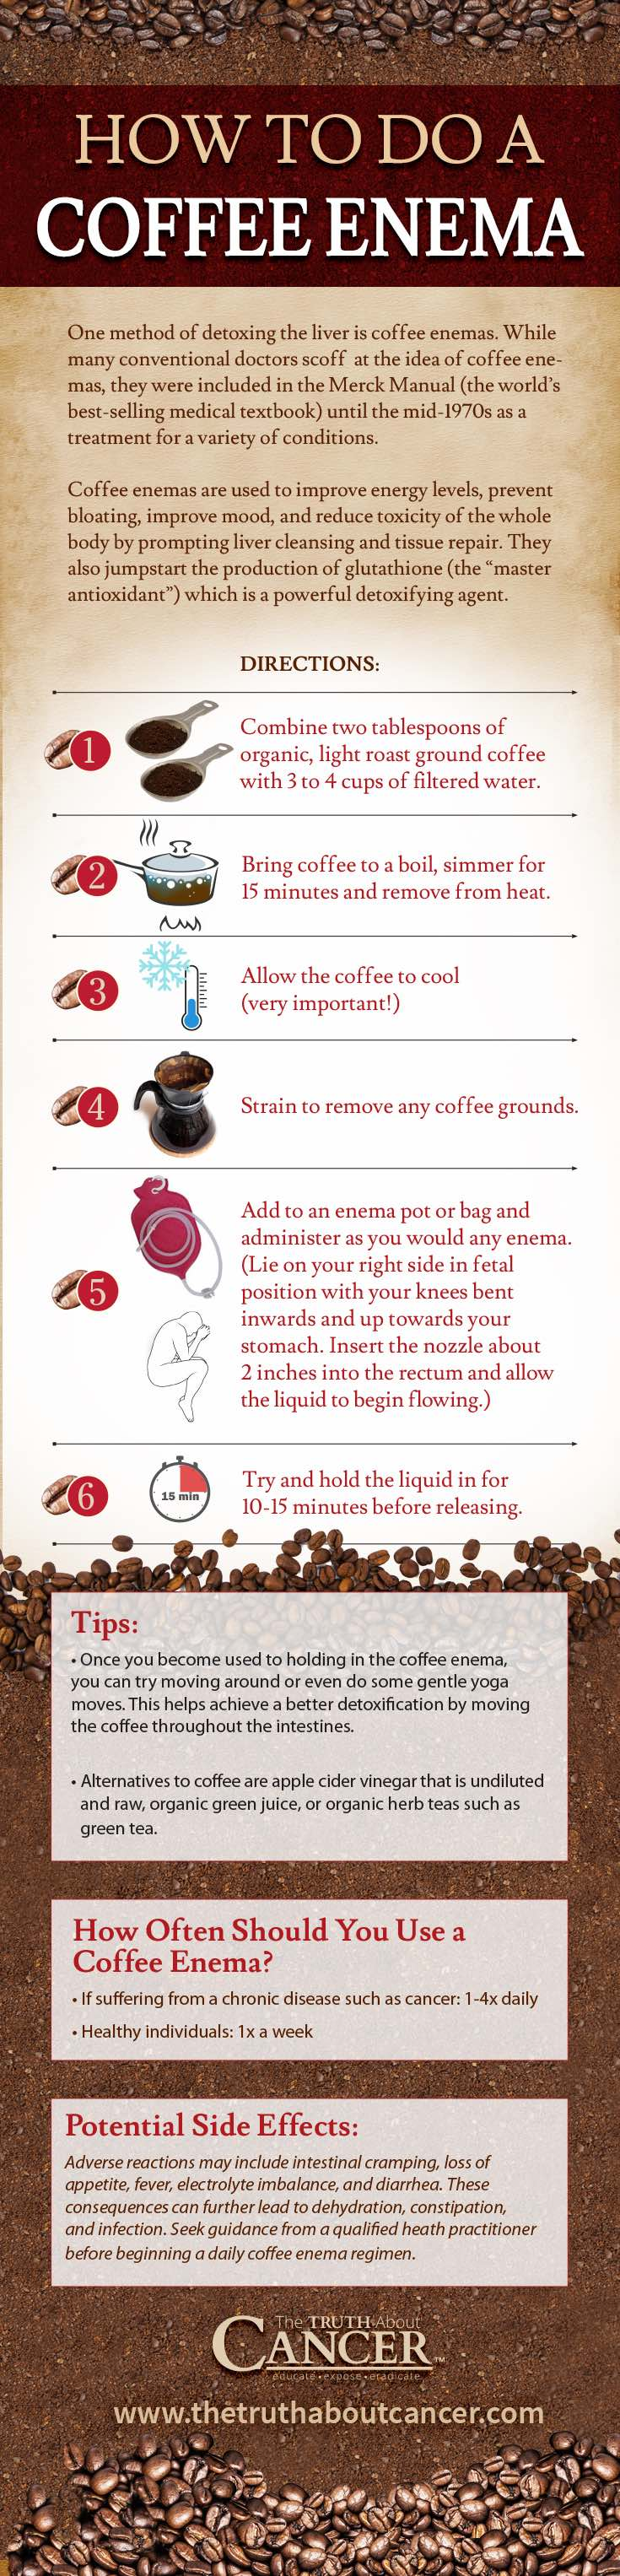 image-how-to-do-coffee-enemas